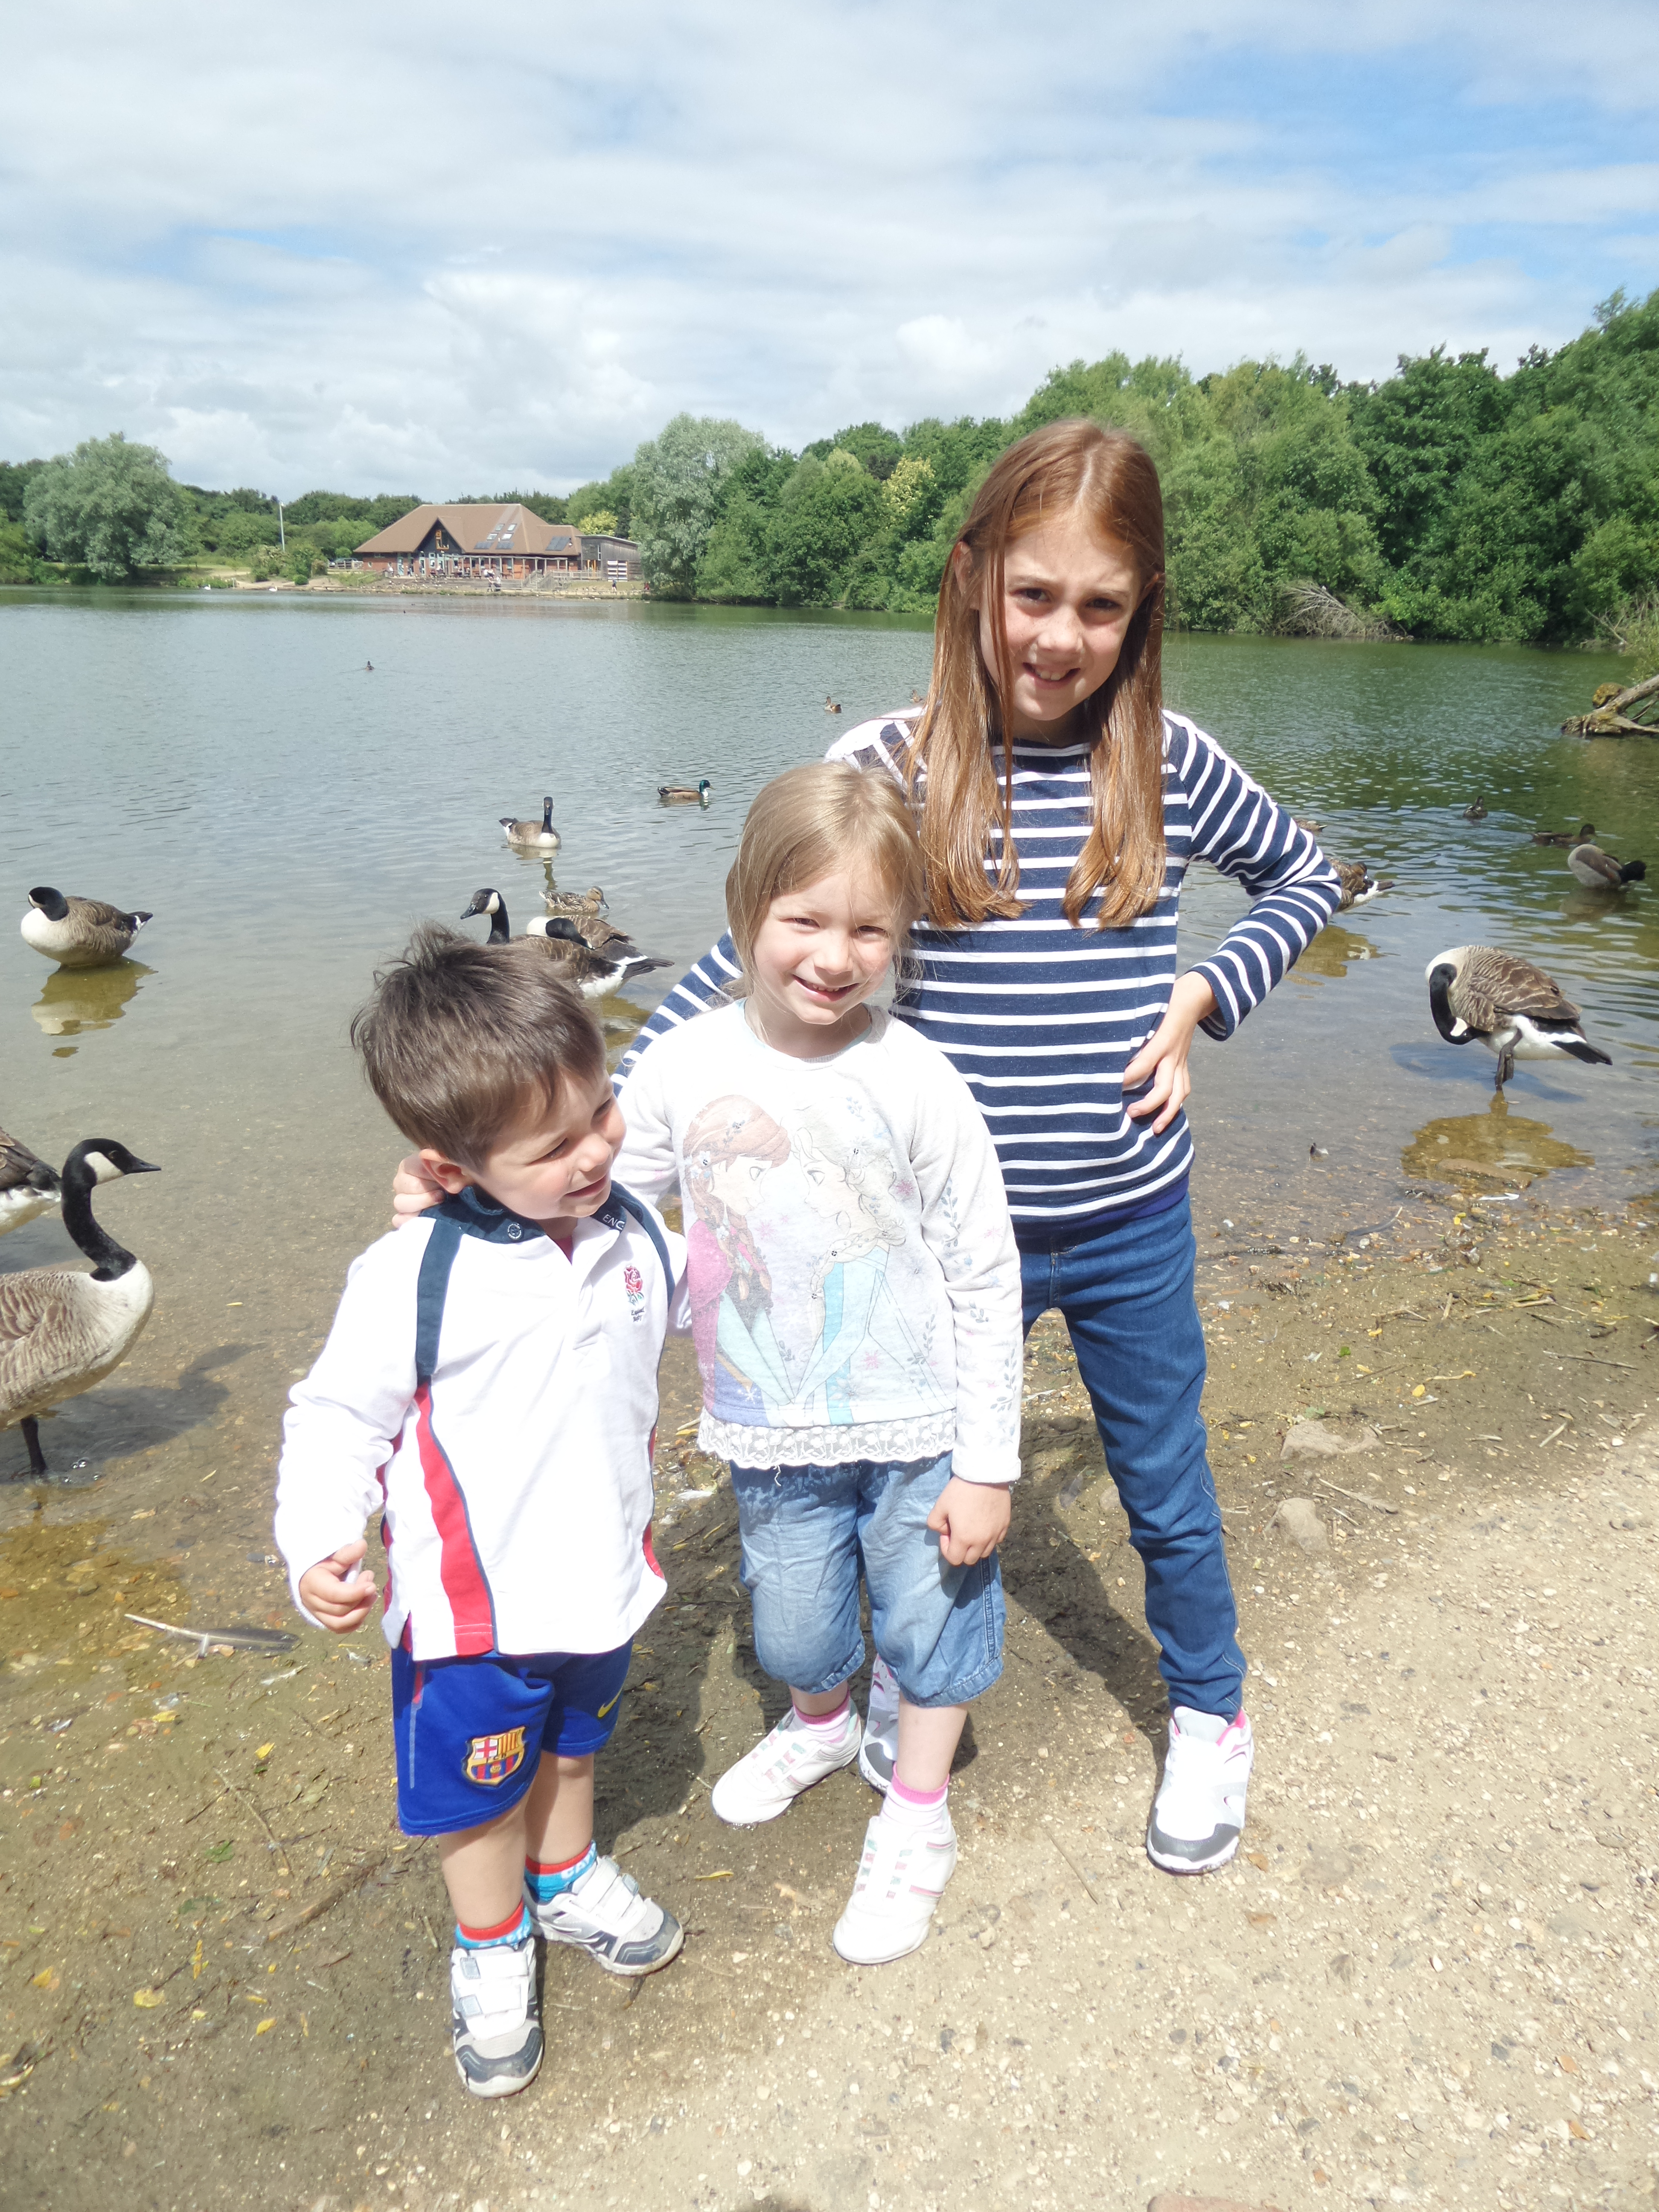 3 kids standing by the lake at the Nature Discovery Centre surrounded by geese